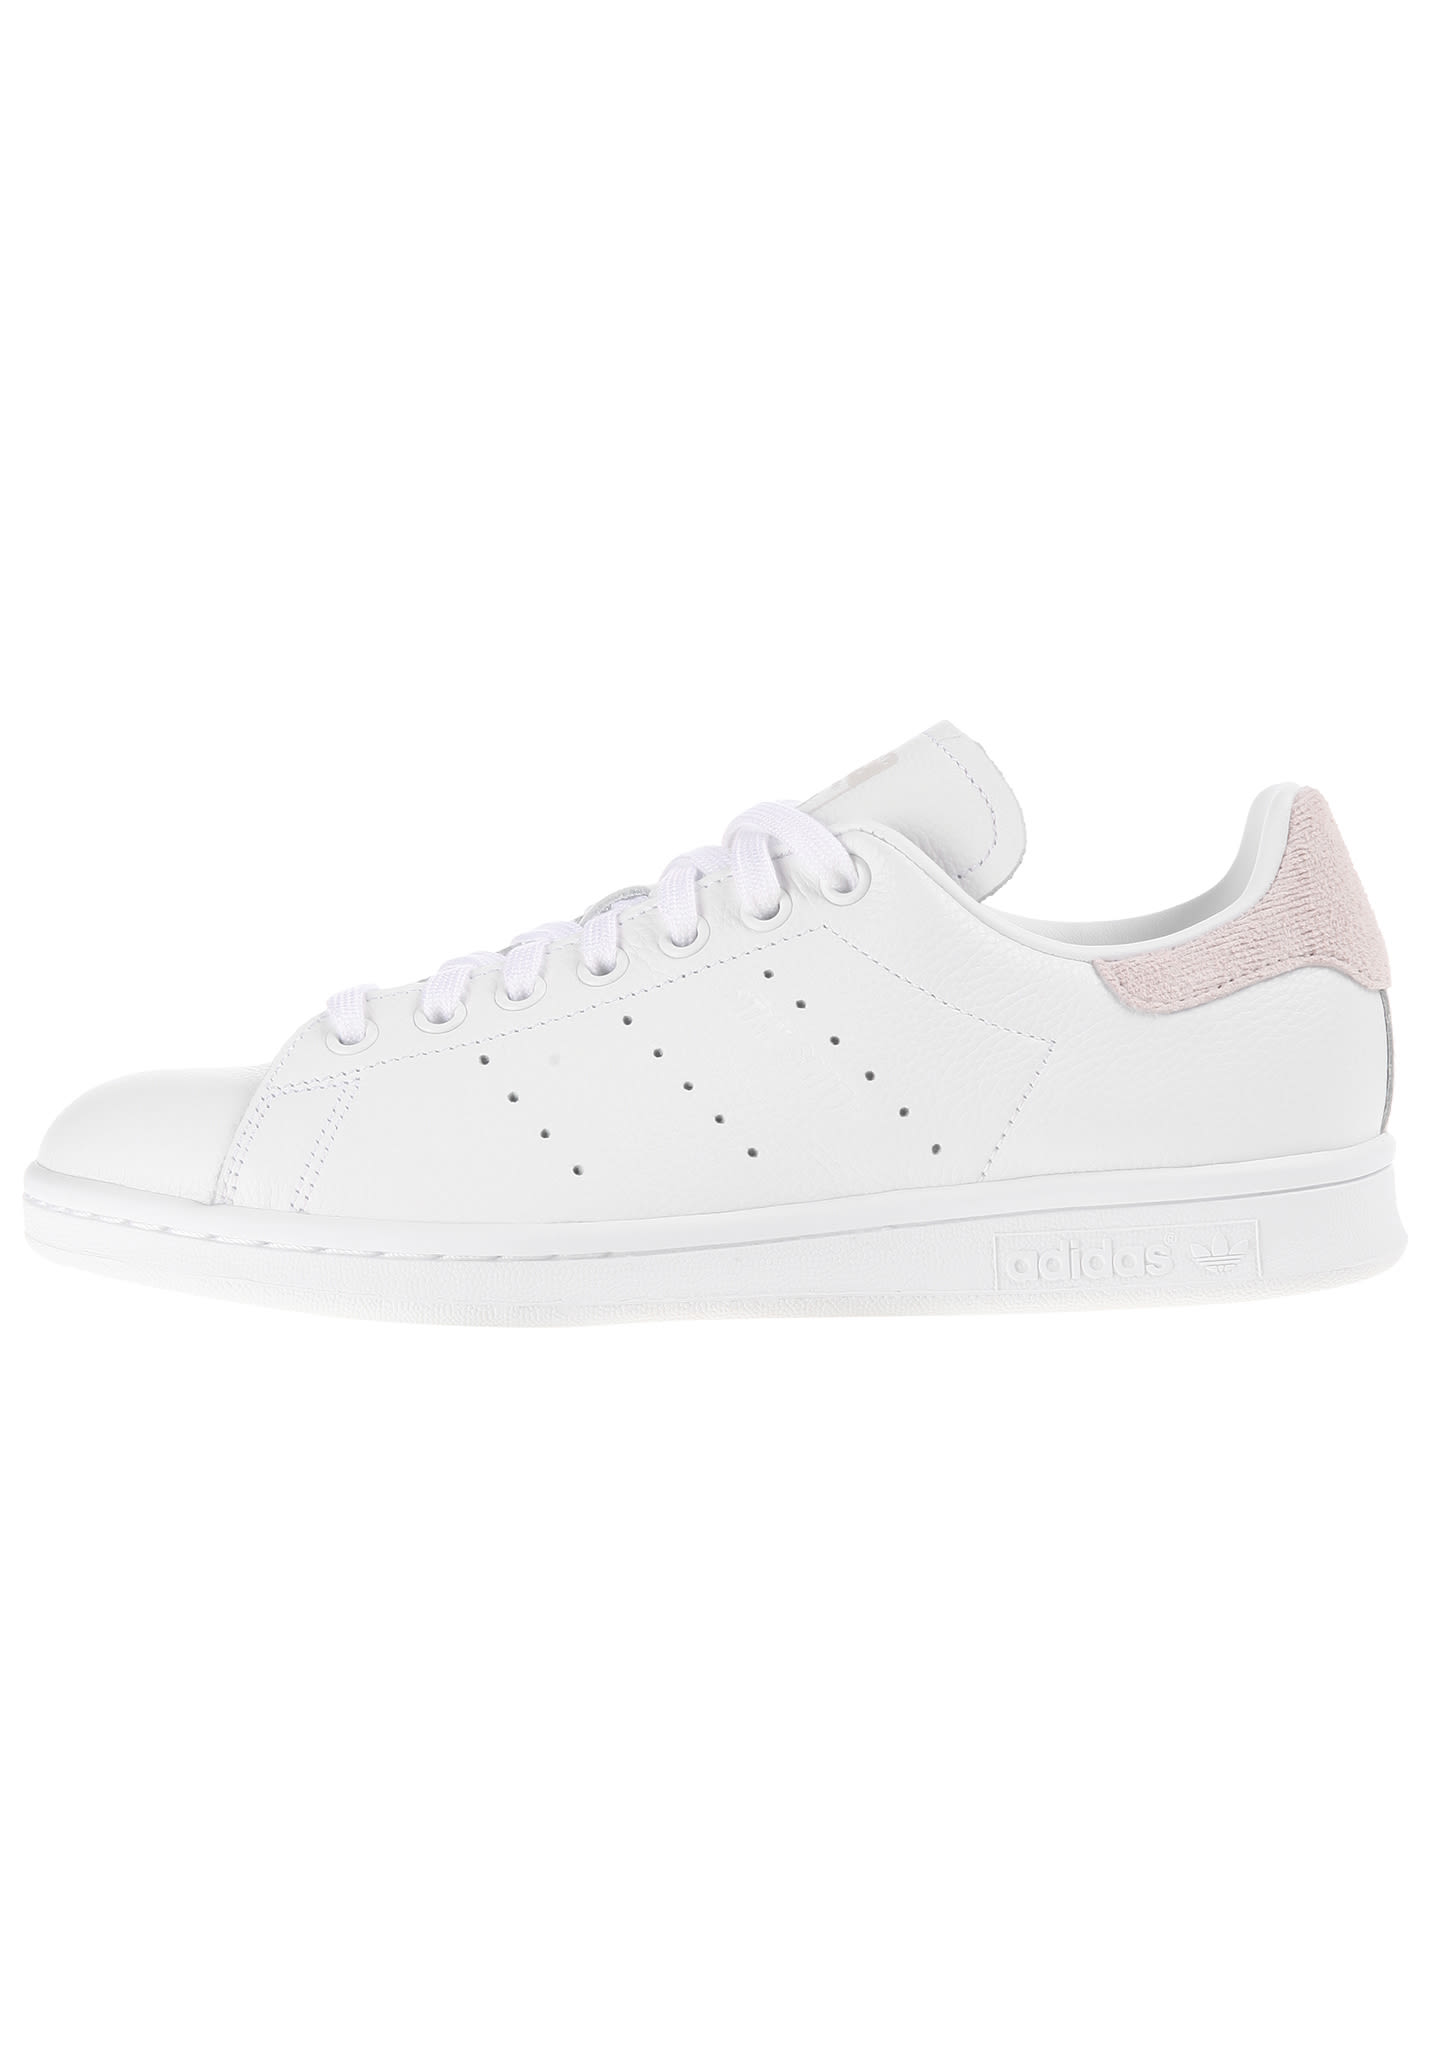 adidas Originals Stan Smith Sneaker für Damen Weiß